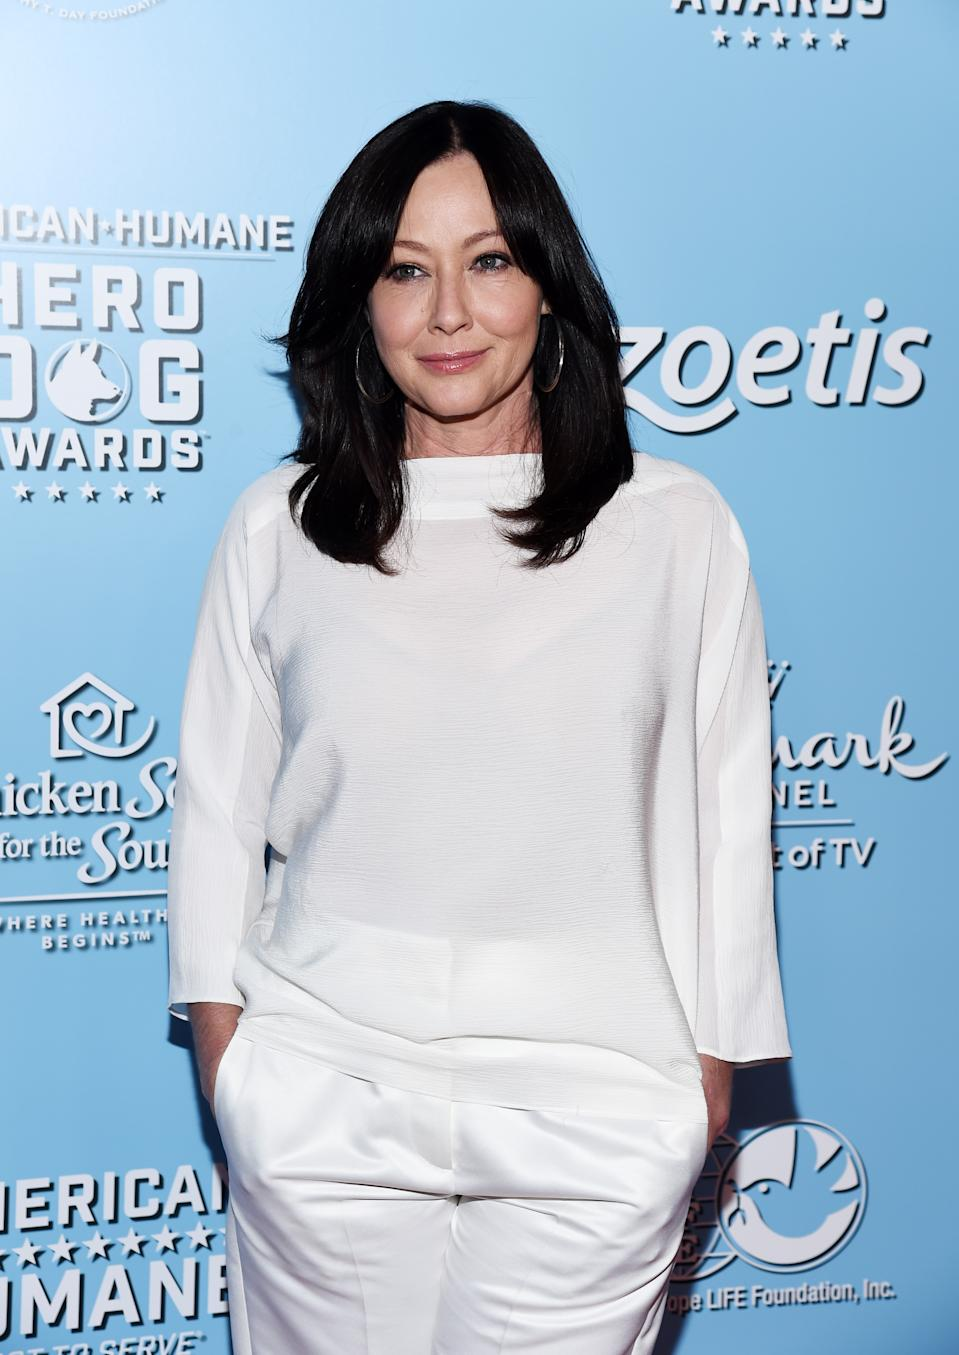 BEVERLY HILLS, CALIFORNIA - OCTOBER 05: Shannen Doherty arrives at the 9th Annual American Humane Hero Dog Awards at The Beverly Hilton Hotel on October 05, 2019 in Beverly Hills, California. (Photo by Amanda Edwards/WireImage)